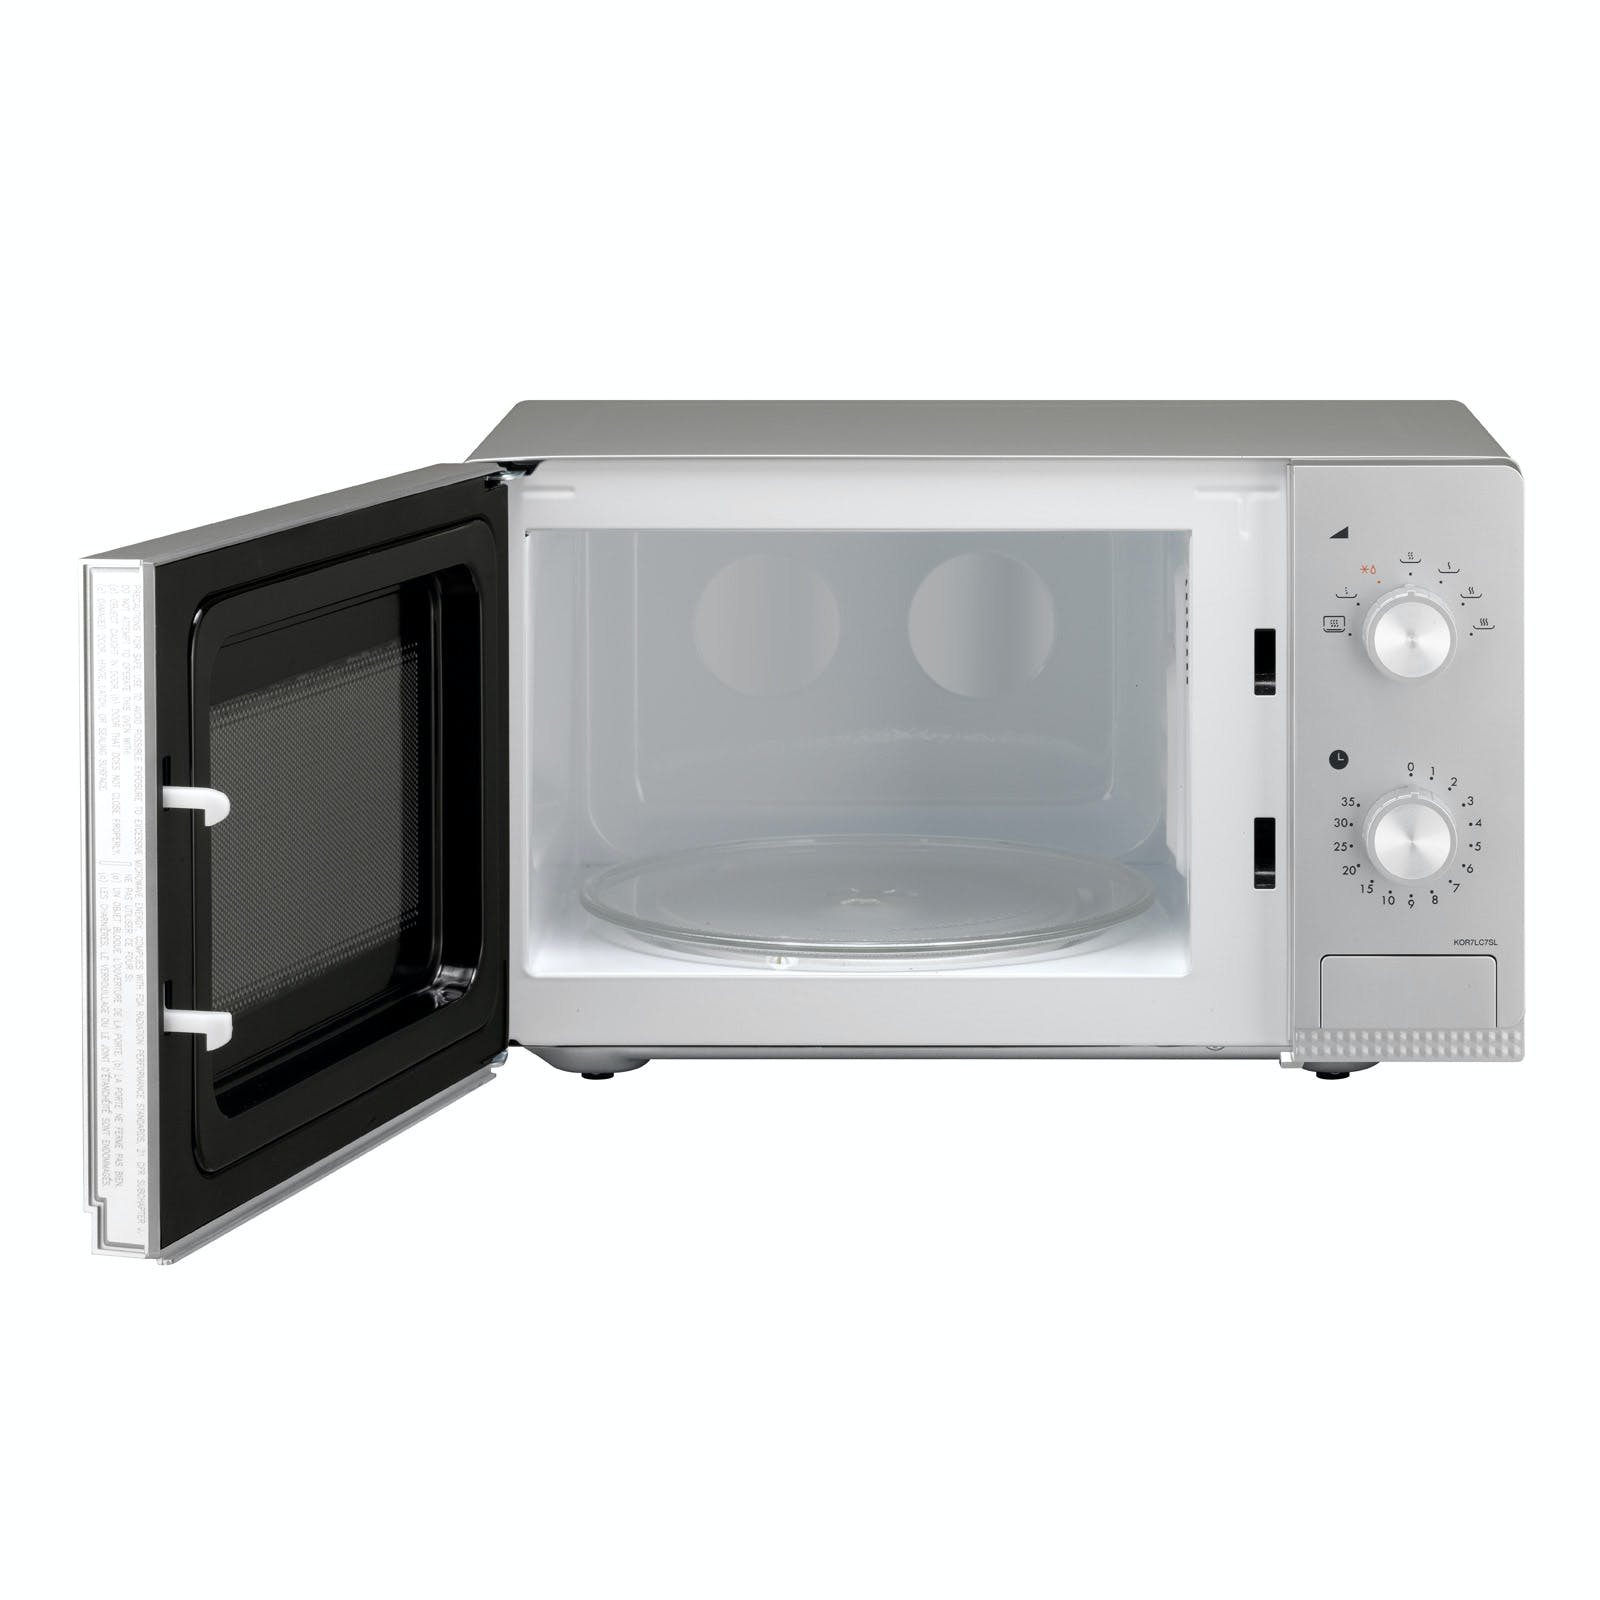 Daewoo KOR7LC7SL Microwave Oven in Silver, 20L 800W Dial Controls